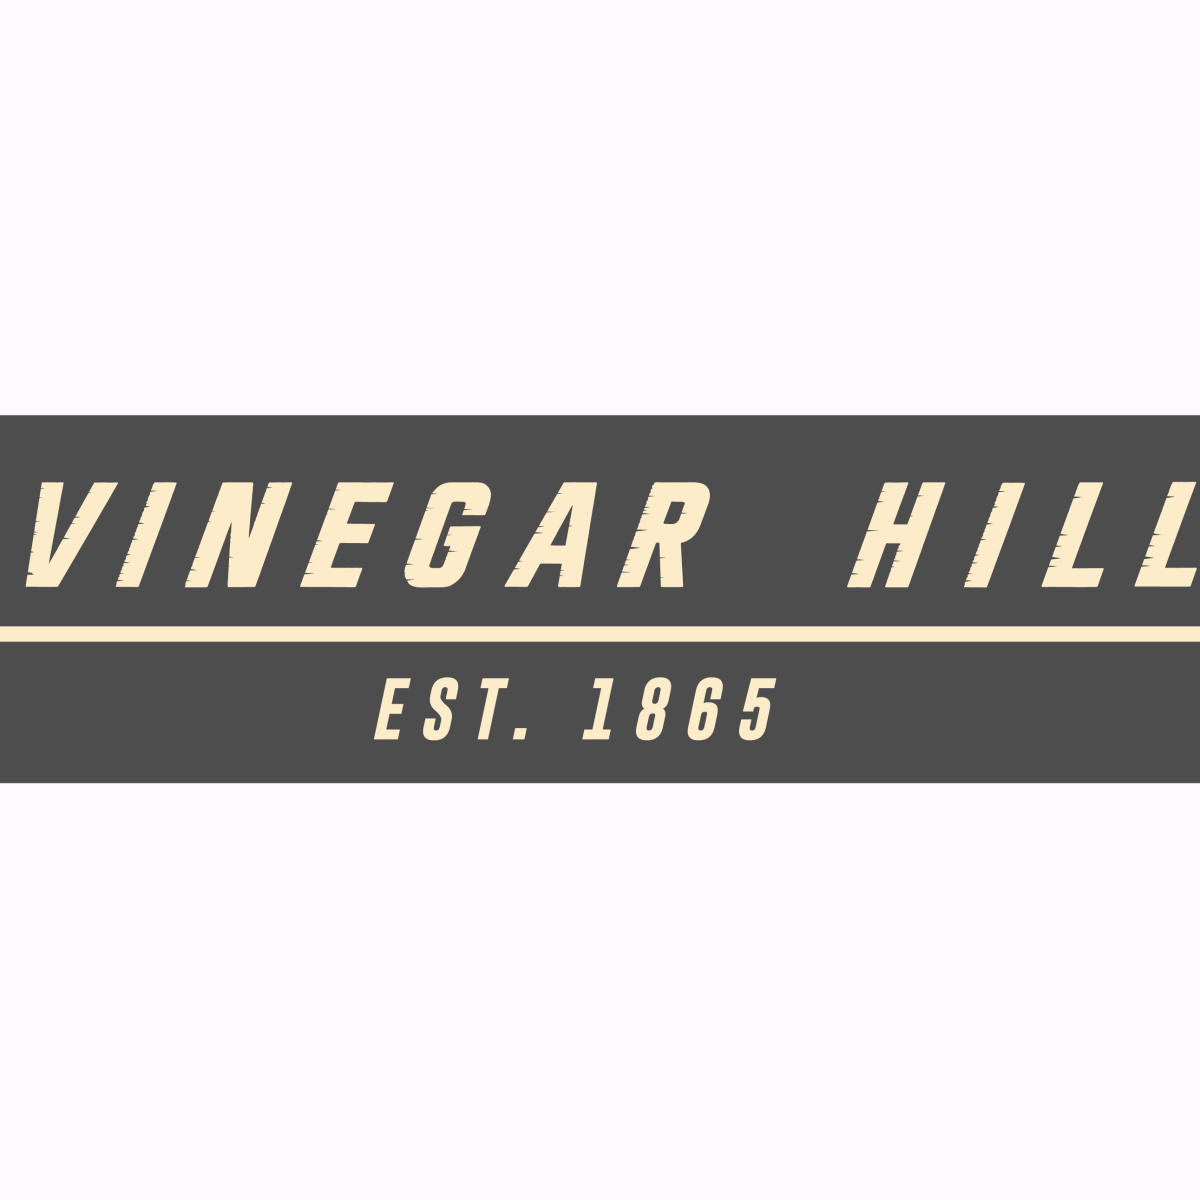 Vinegar Hill logo